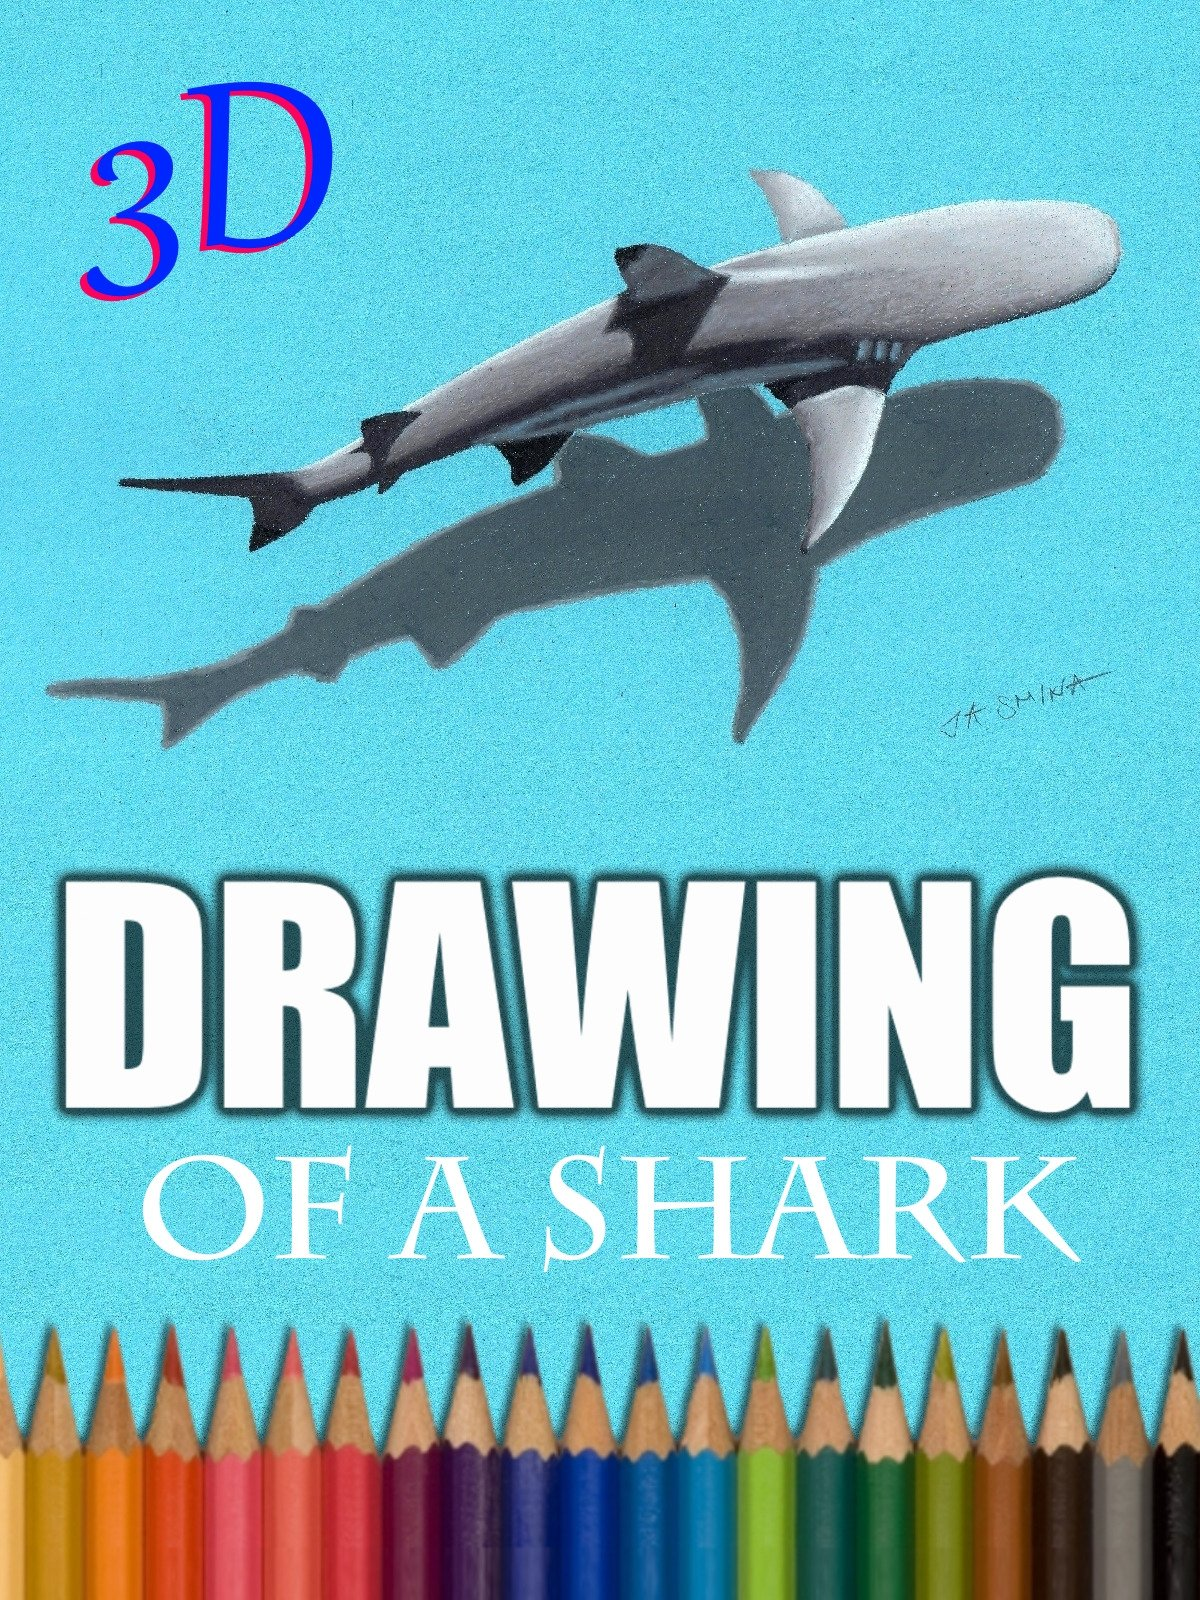 3D Drawing of a Shark